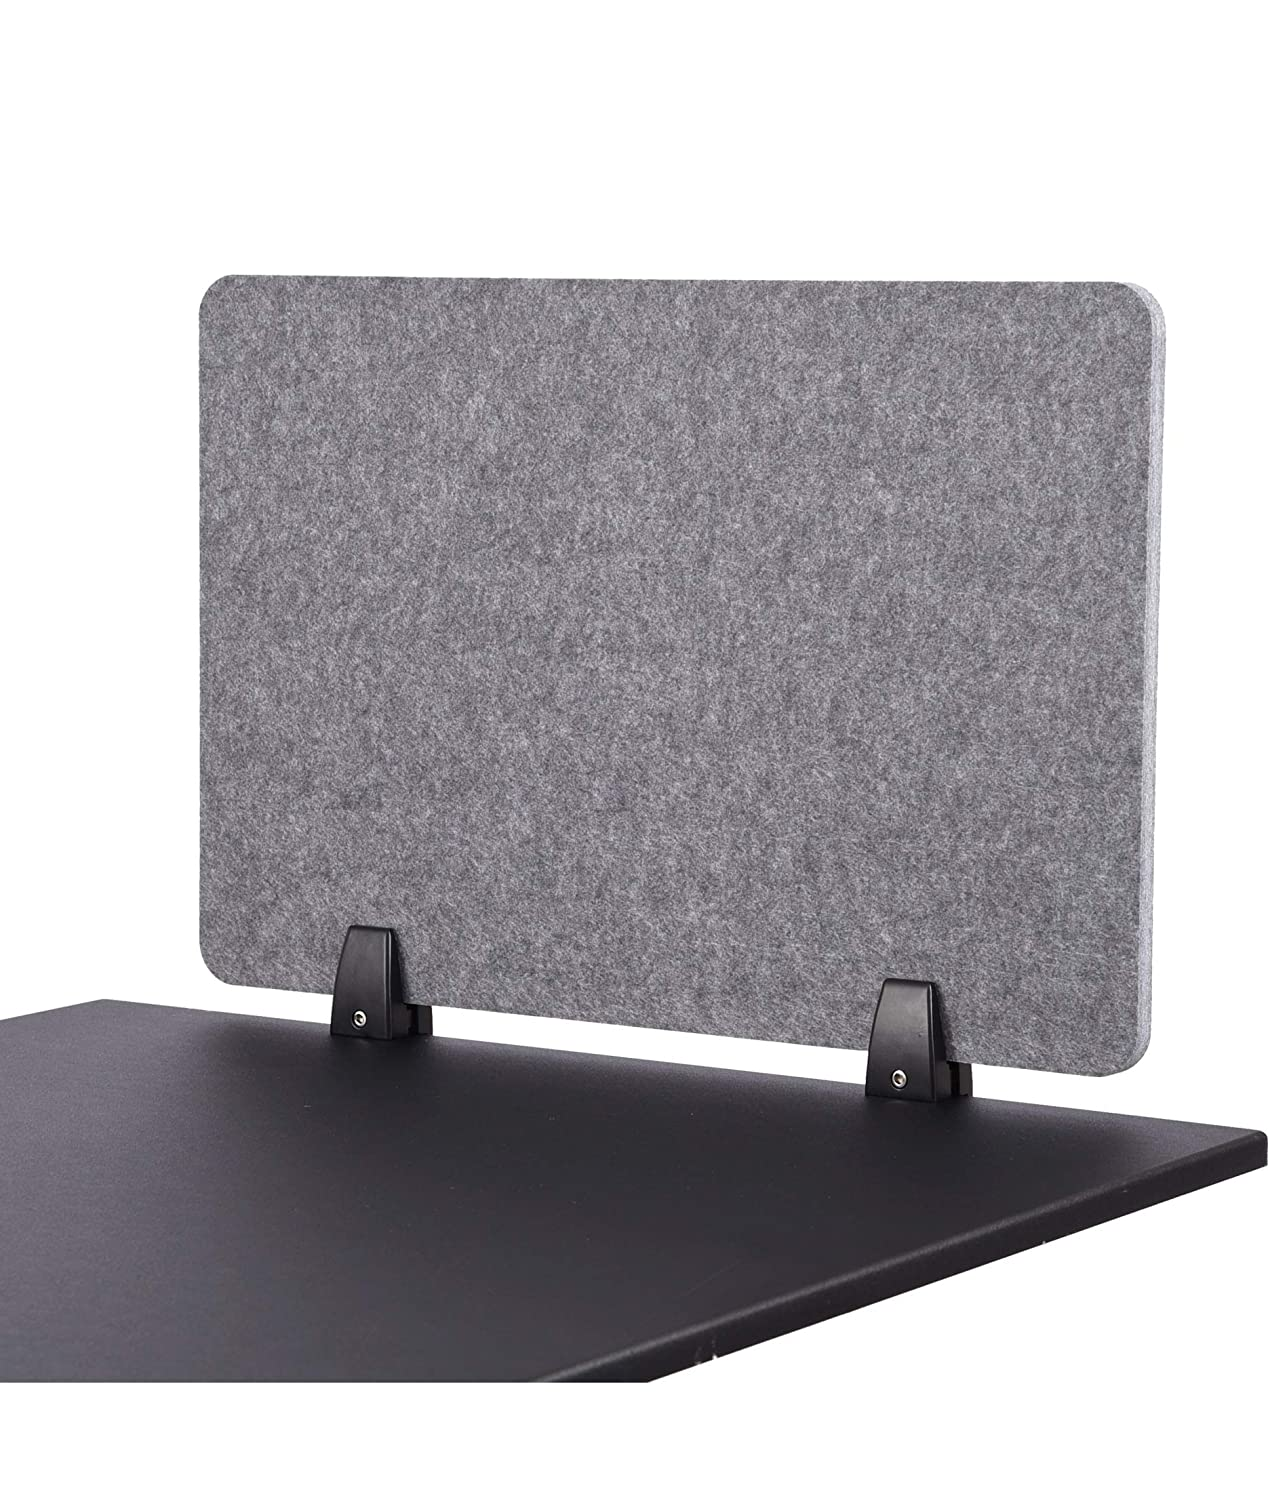 "ReFocus Raw Clamp-On Acoustic Desk Divider – Reduce Noise and Visual Distractions with This Lightweight Desk Mounted Privacy Panel (Castle Gray, 24"" X 16"")"